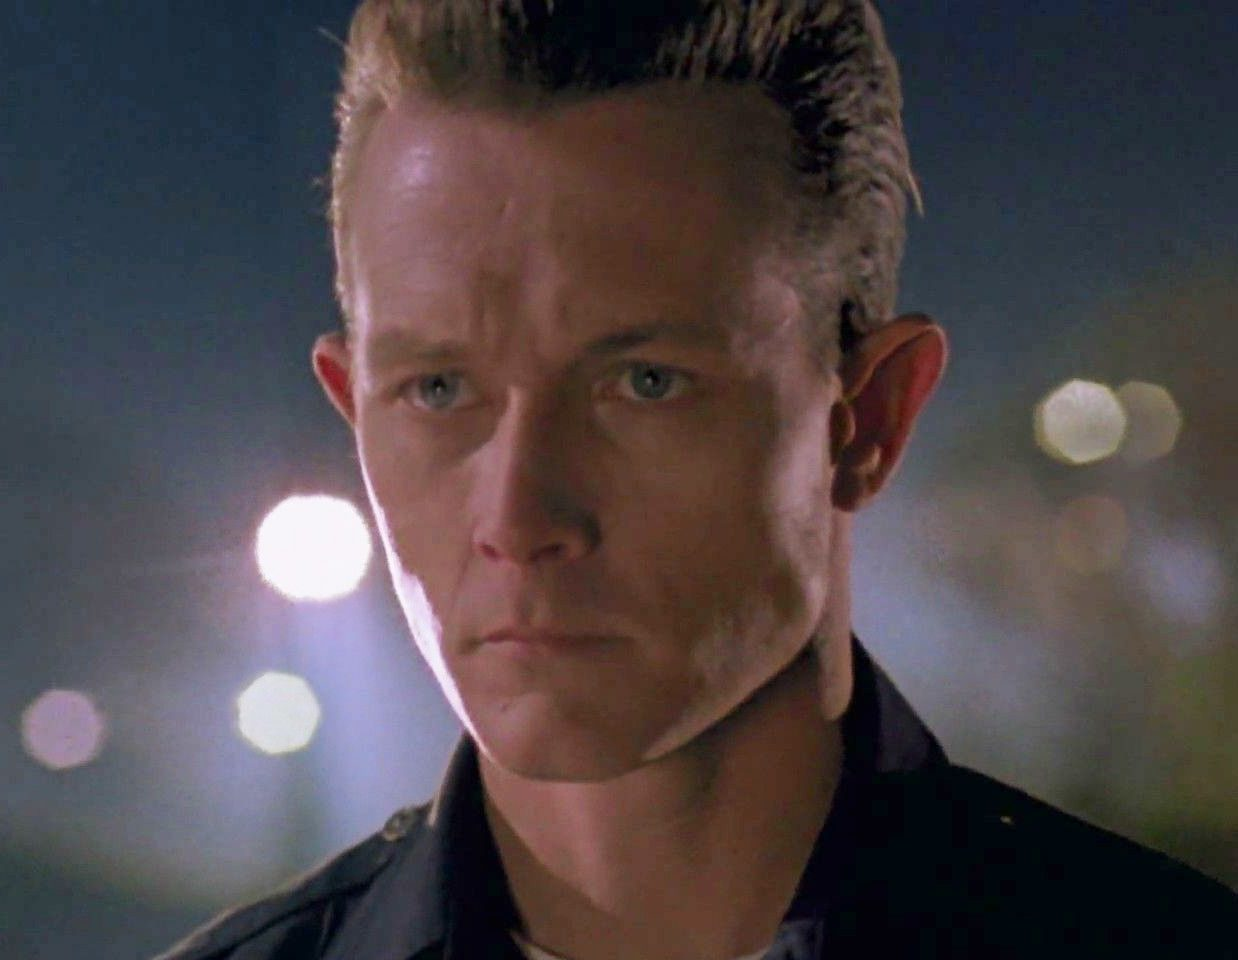 Terminator 2 Judgment Day Robert Patrick as the T 1000 e1614936638939 20 Things You Probably Didn't Know About Billy Idol